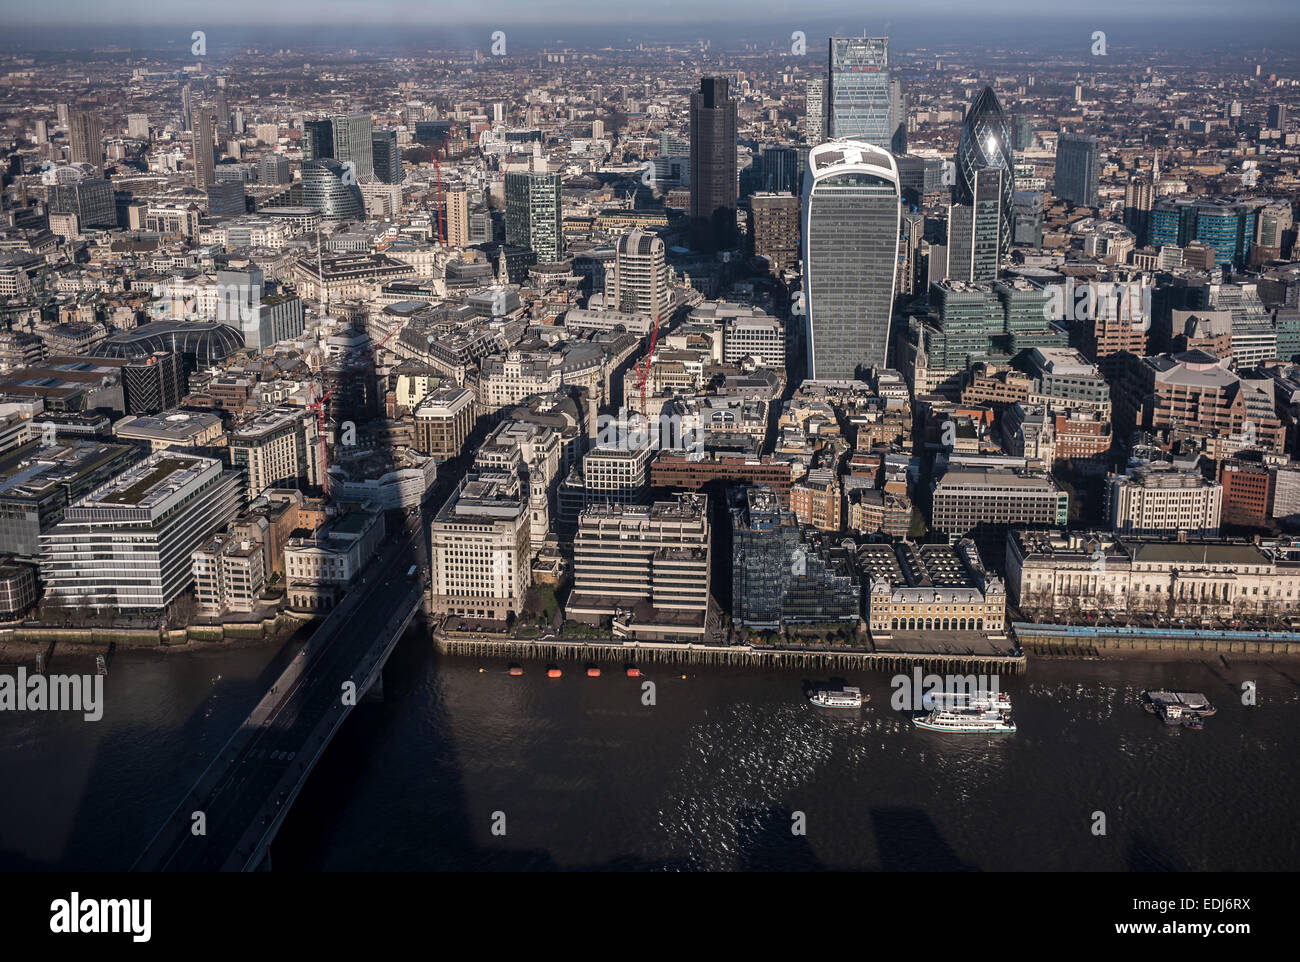 Aerial view of the City of London with Tower 42, 20 Fenchurch Street (aka The Pint), 122 Leadenhall Street (aka - Stock Image